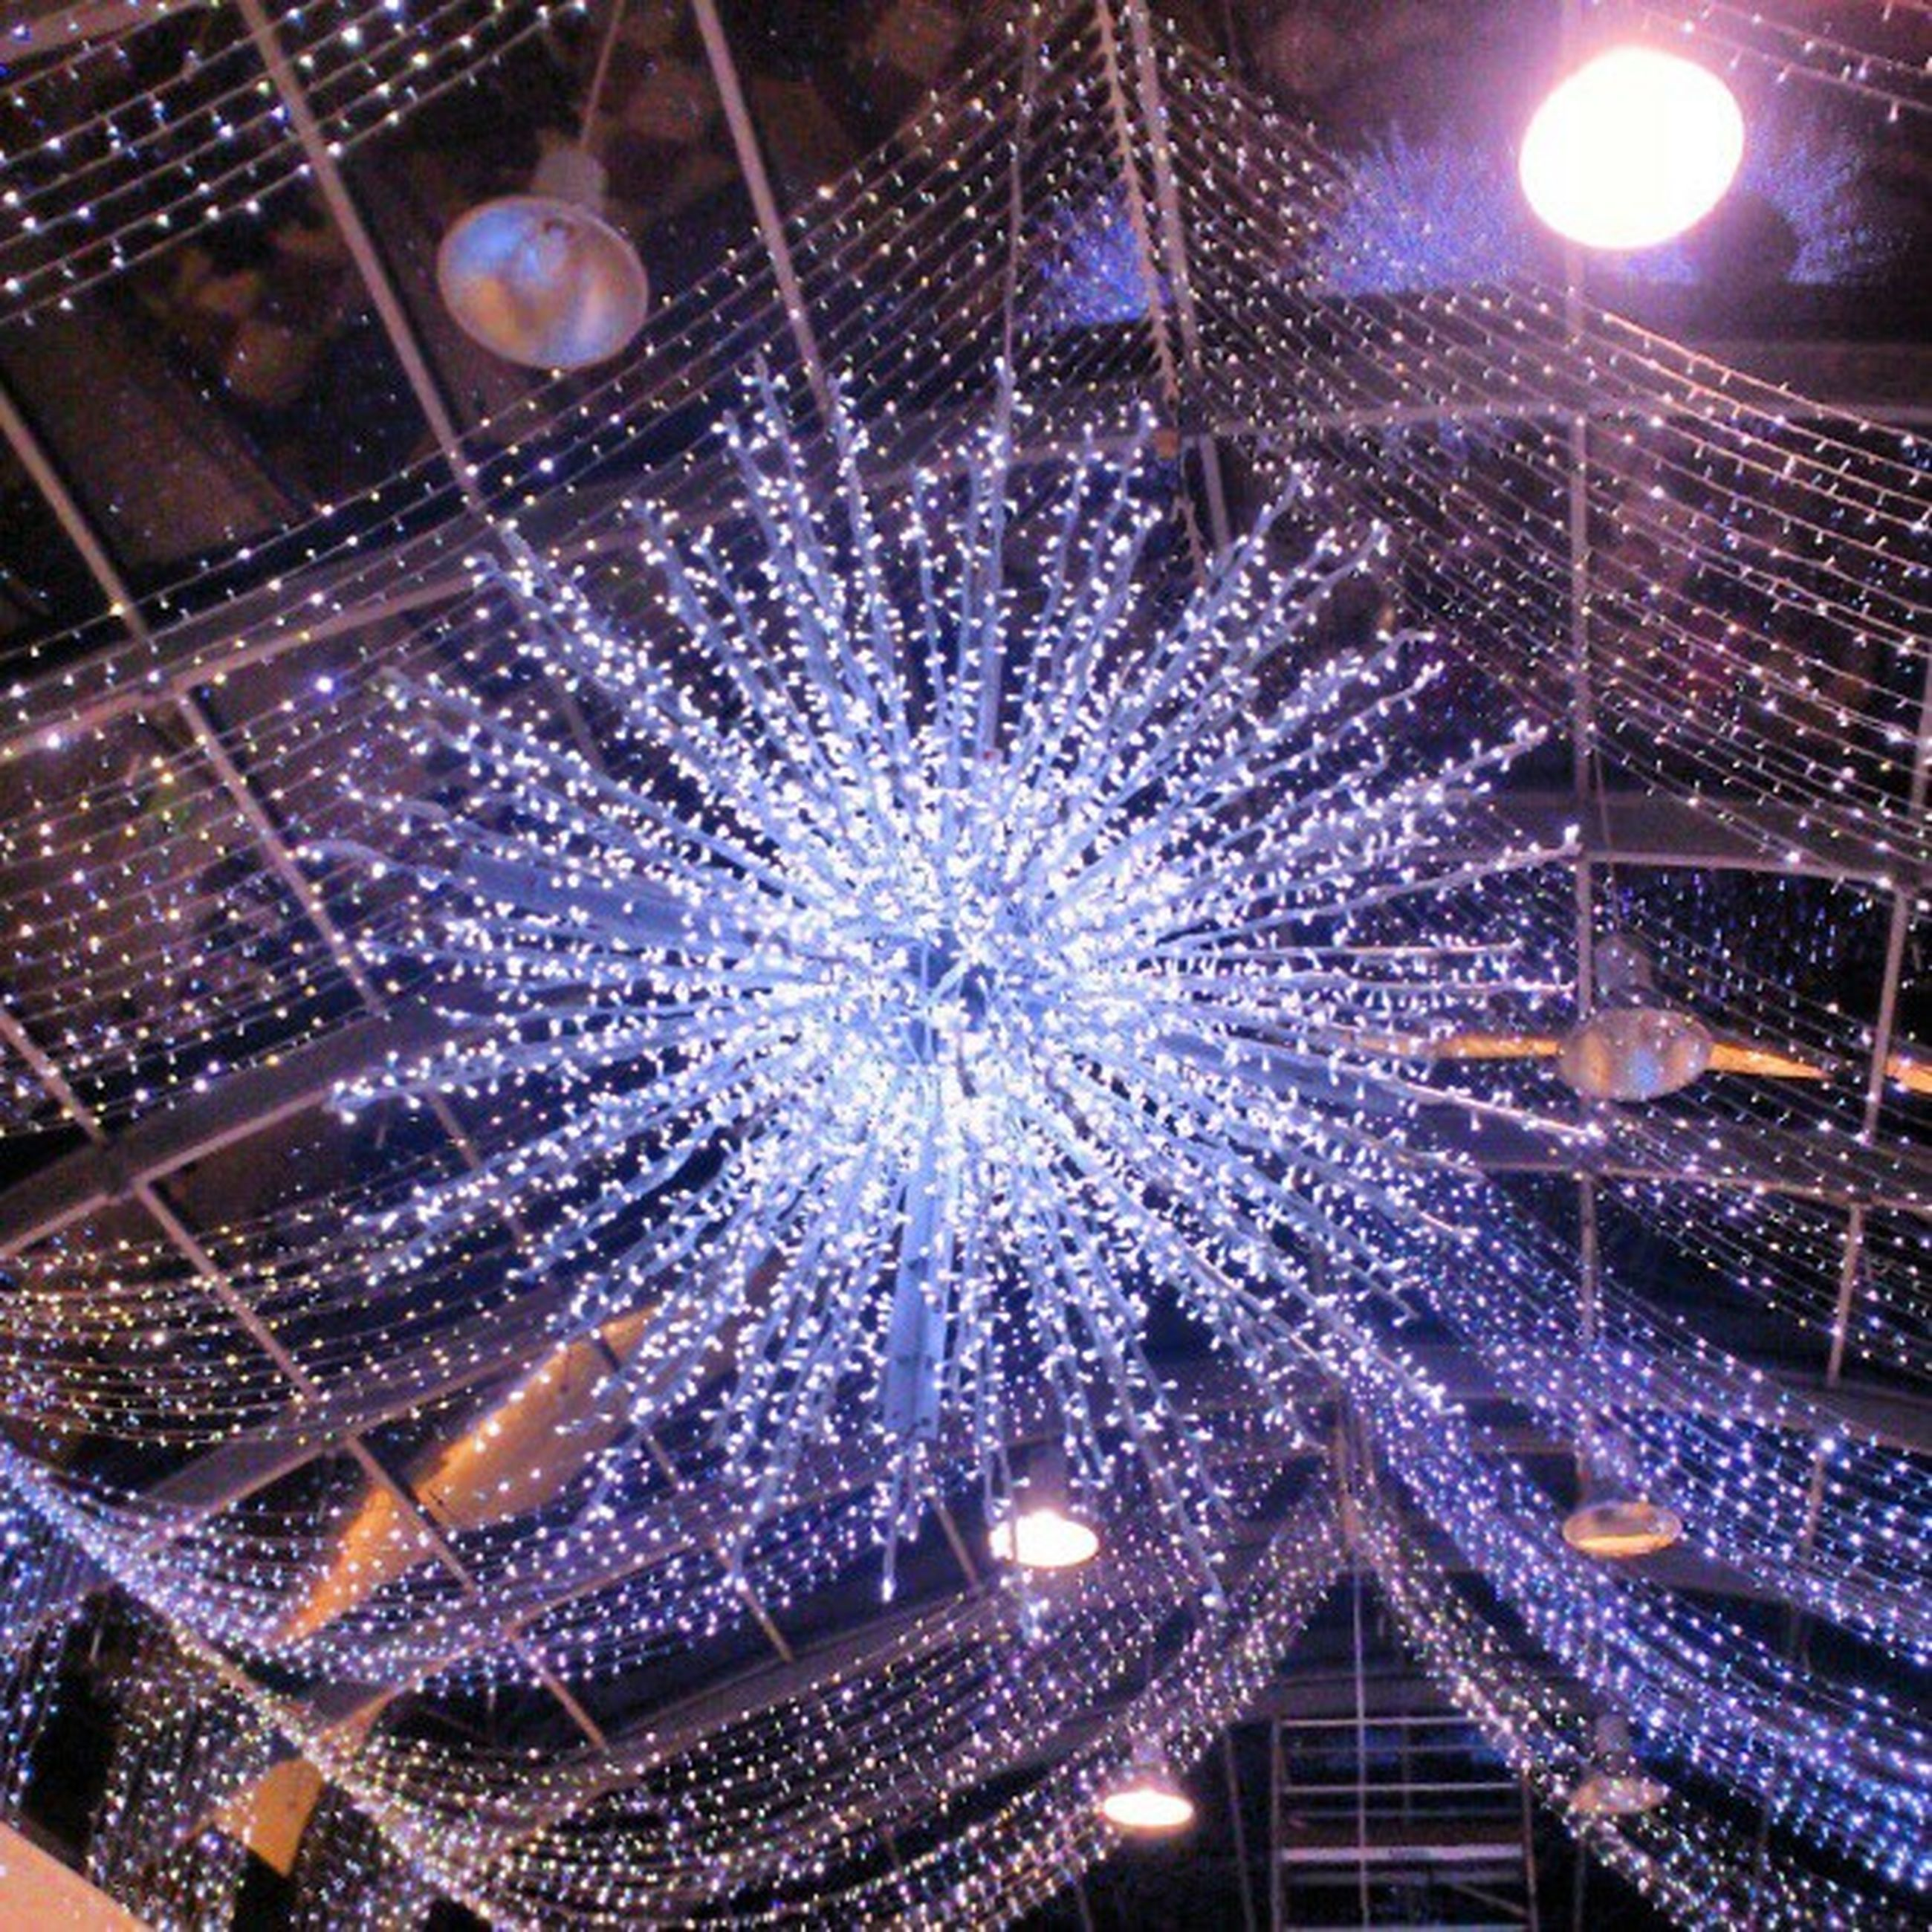 illuminated, night, lighting equipment, low angle view, decoration, celebration, built structure, hanging, architecture, indoors, glowing, christmas decoration, ceiling, modern, christmas lights, christmas tree, arts culture and entertainment, christmas, building exterior, electric light